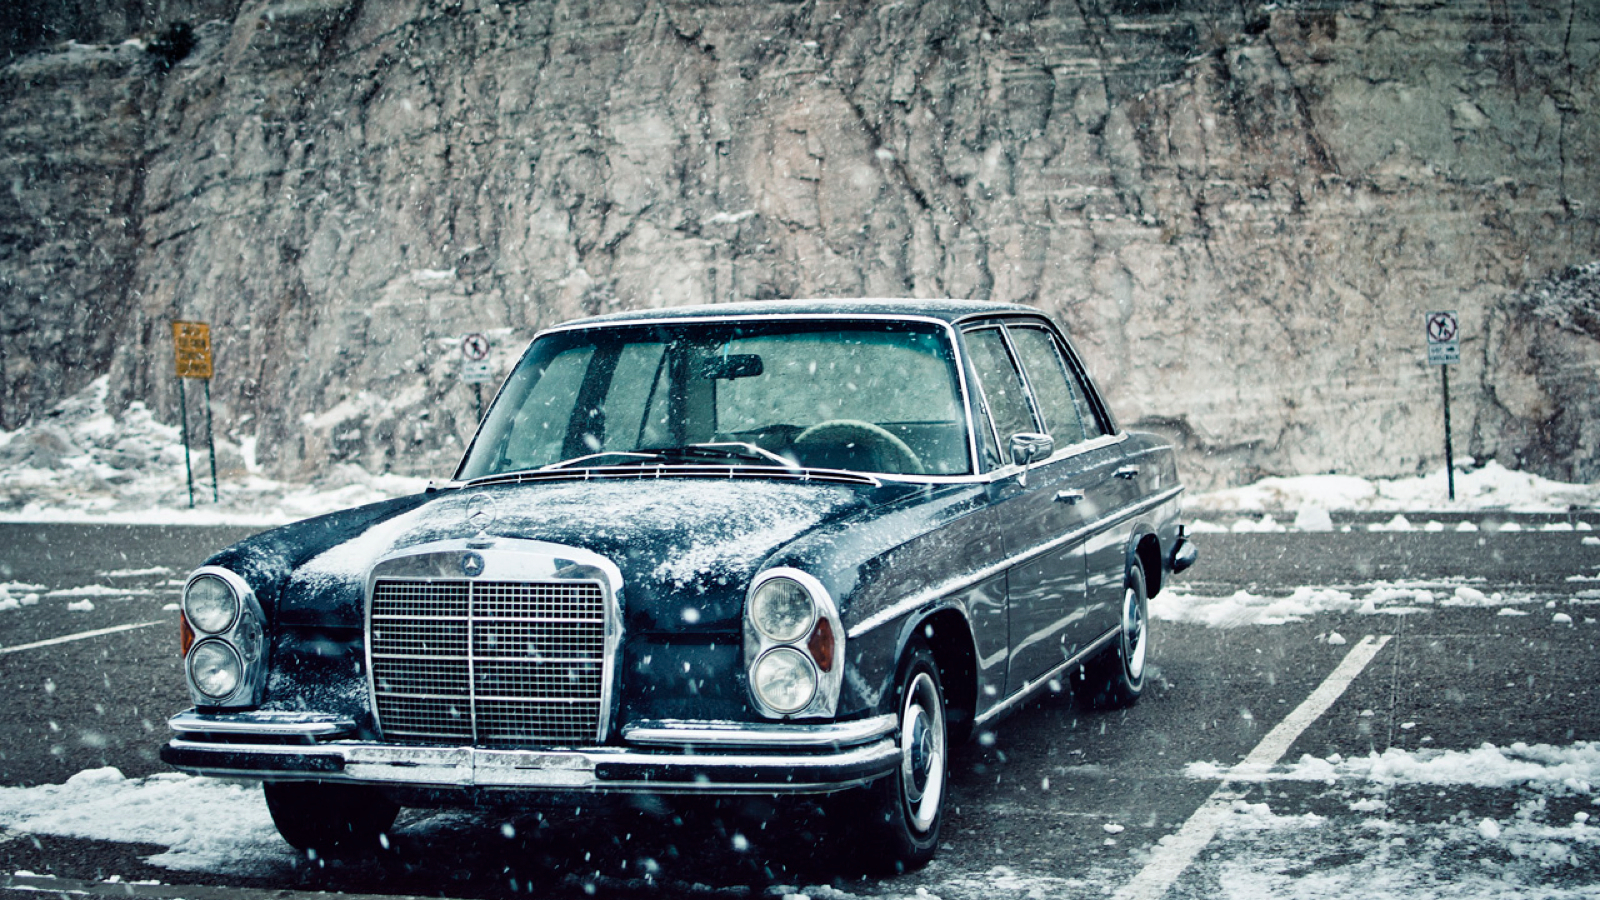 Mercedes-Benz W108 Wallpaper and Background Image ...